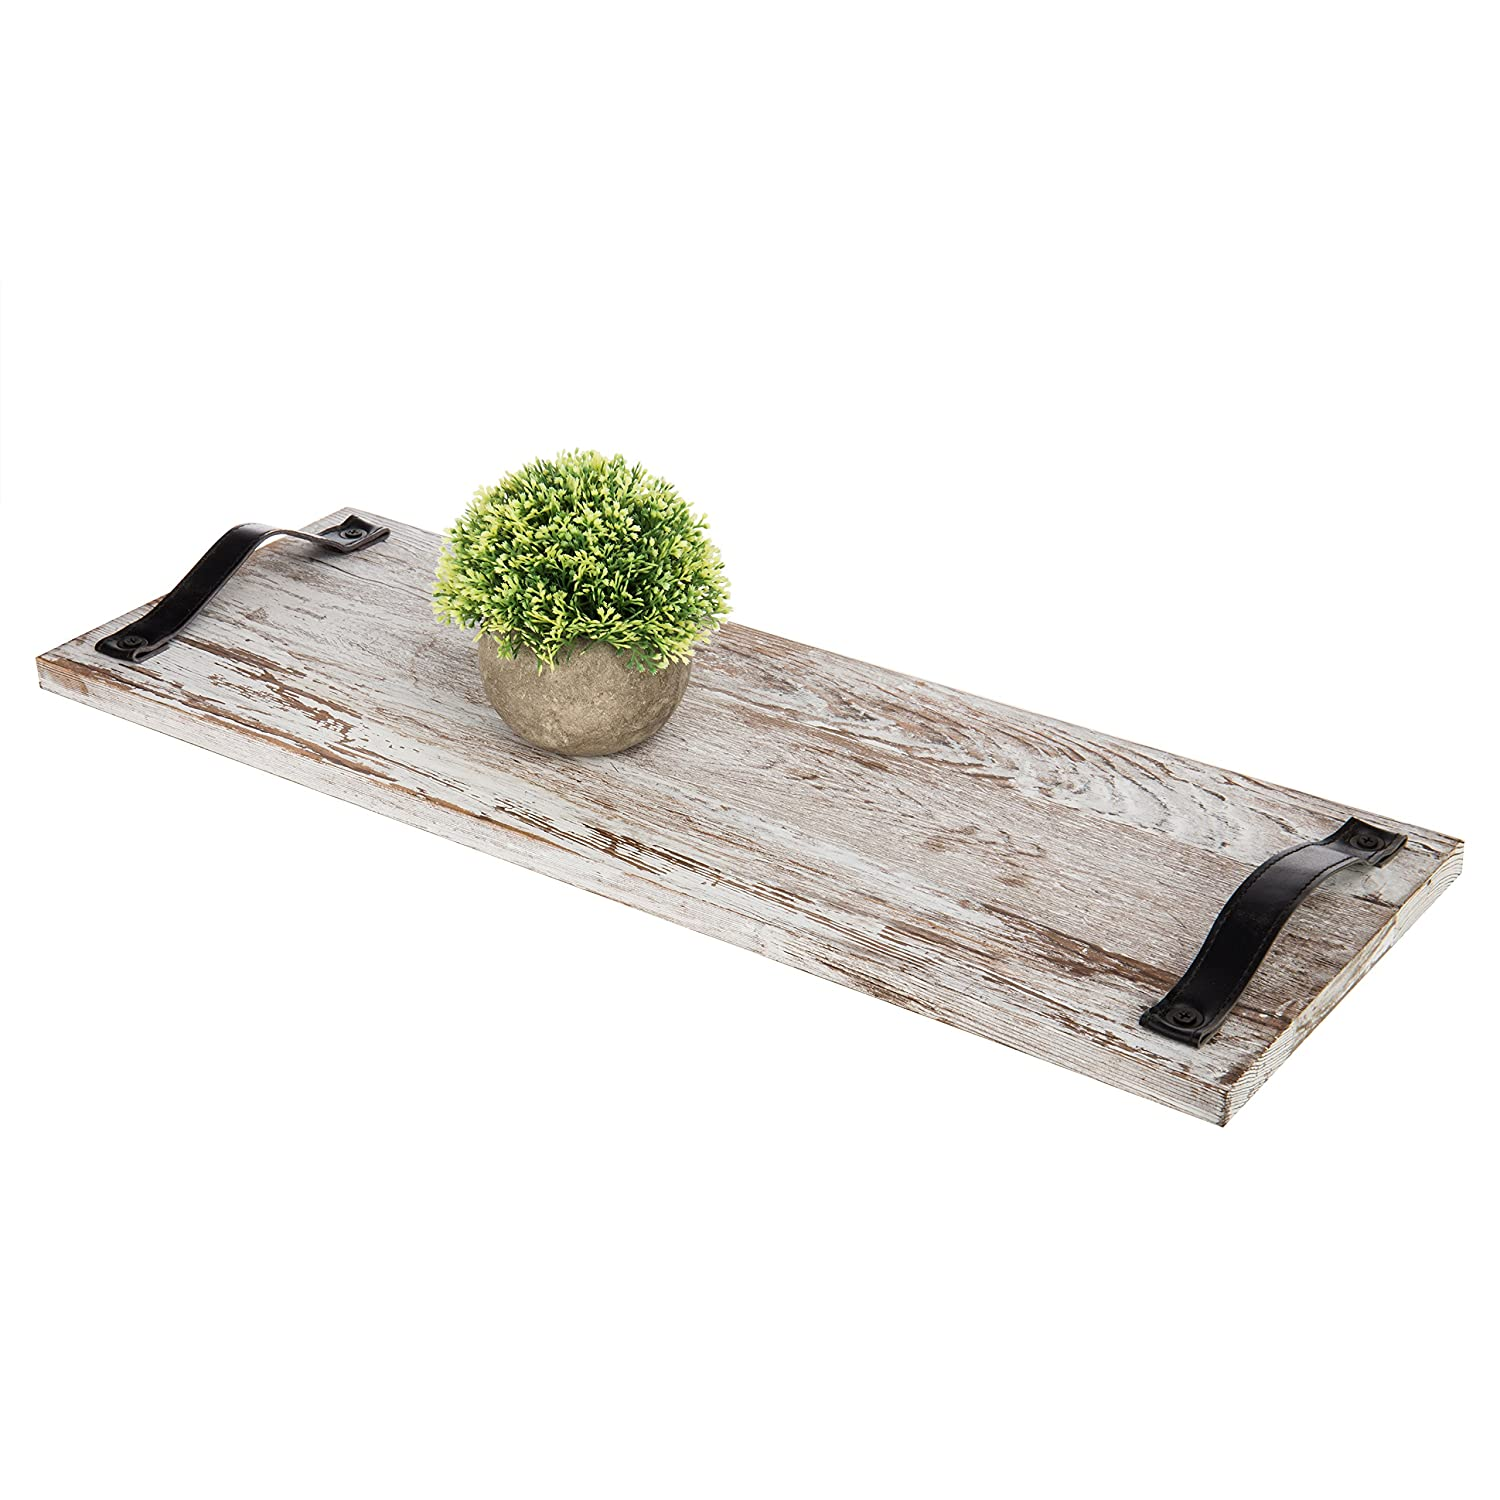 MyGift 24-Inch Graywashed Wood Plank Serving Trays with Strap Handles